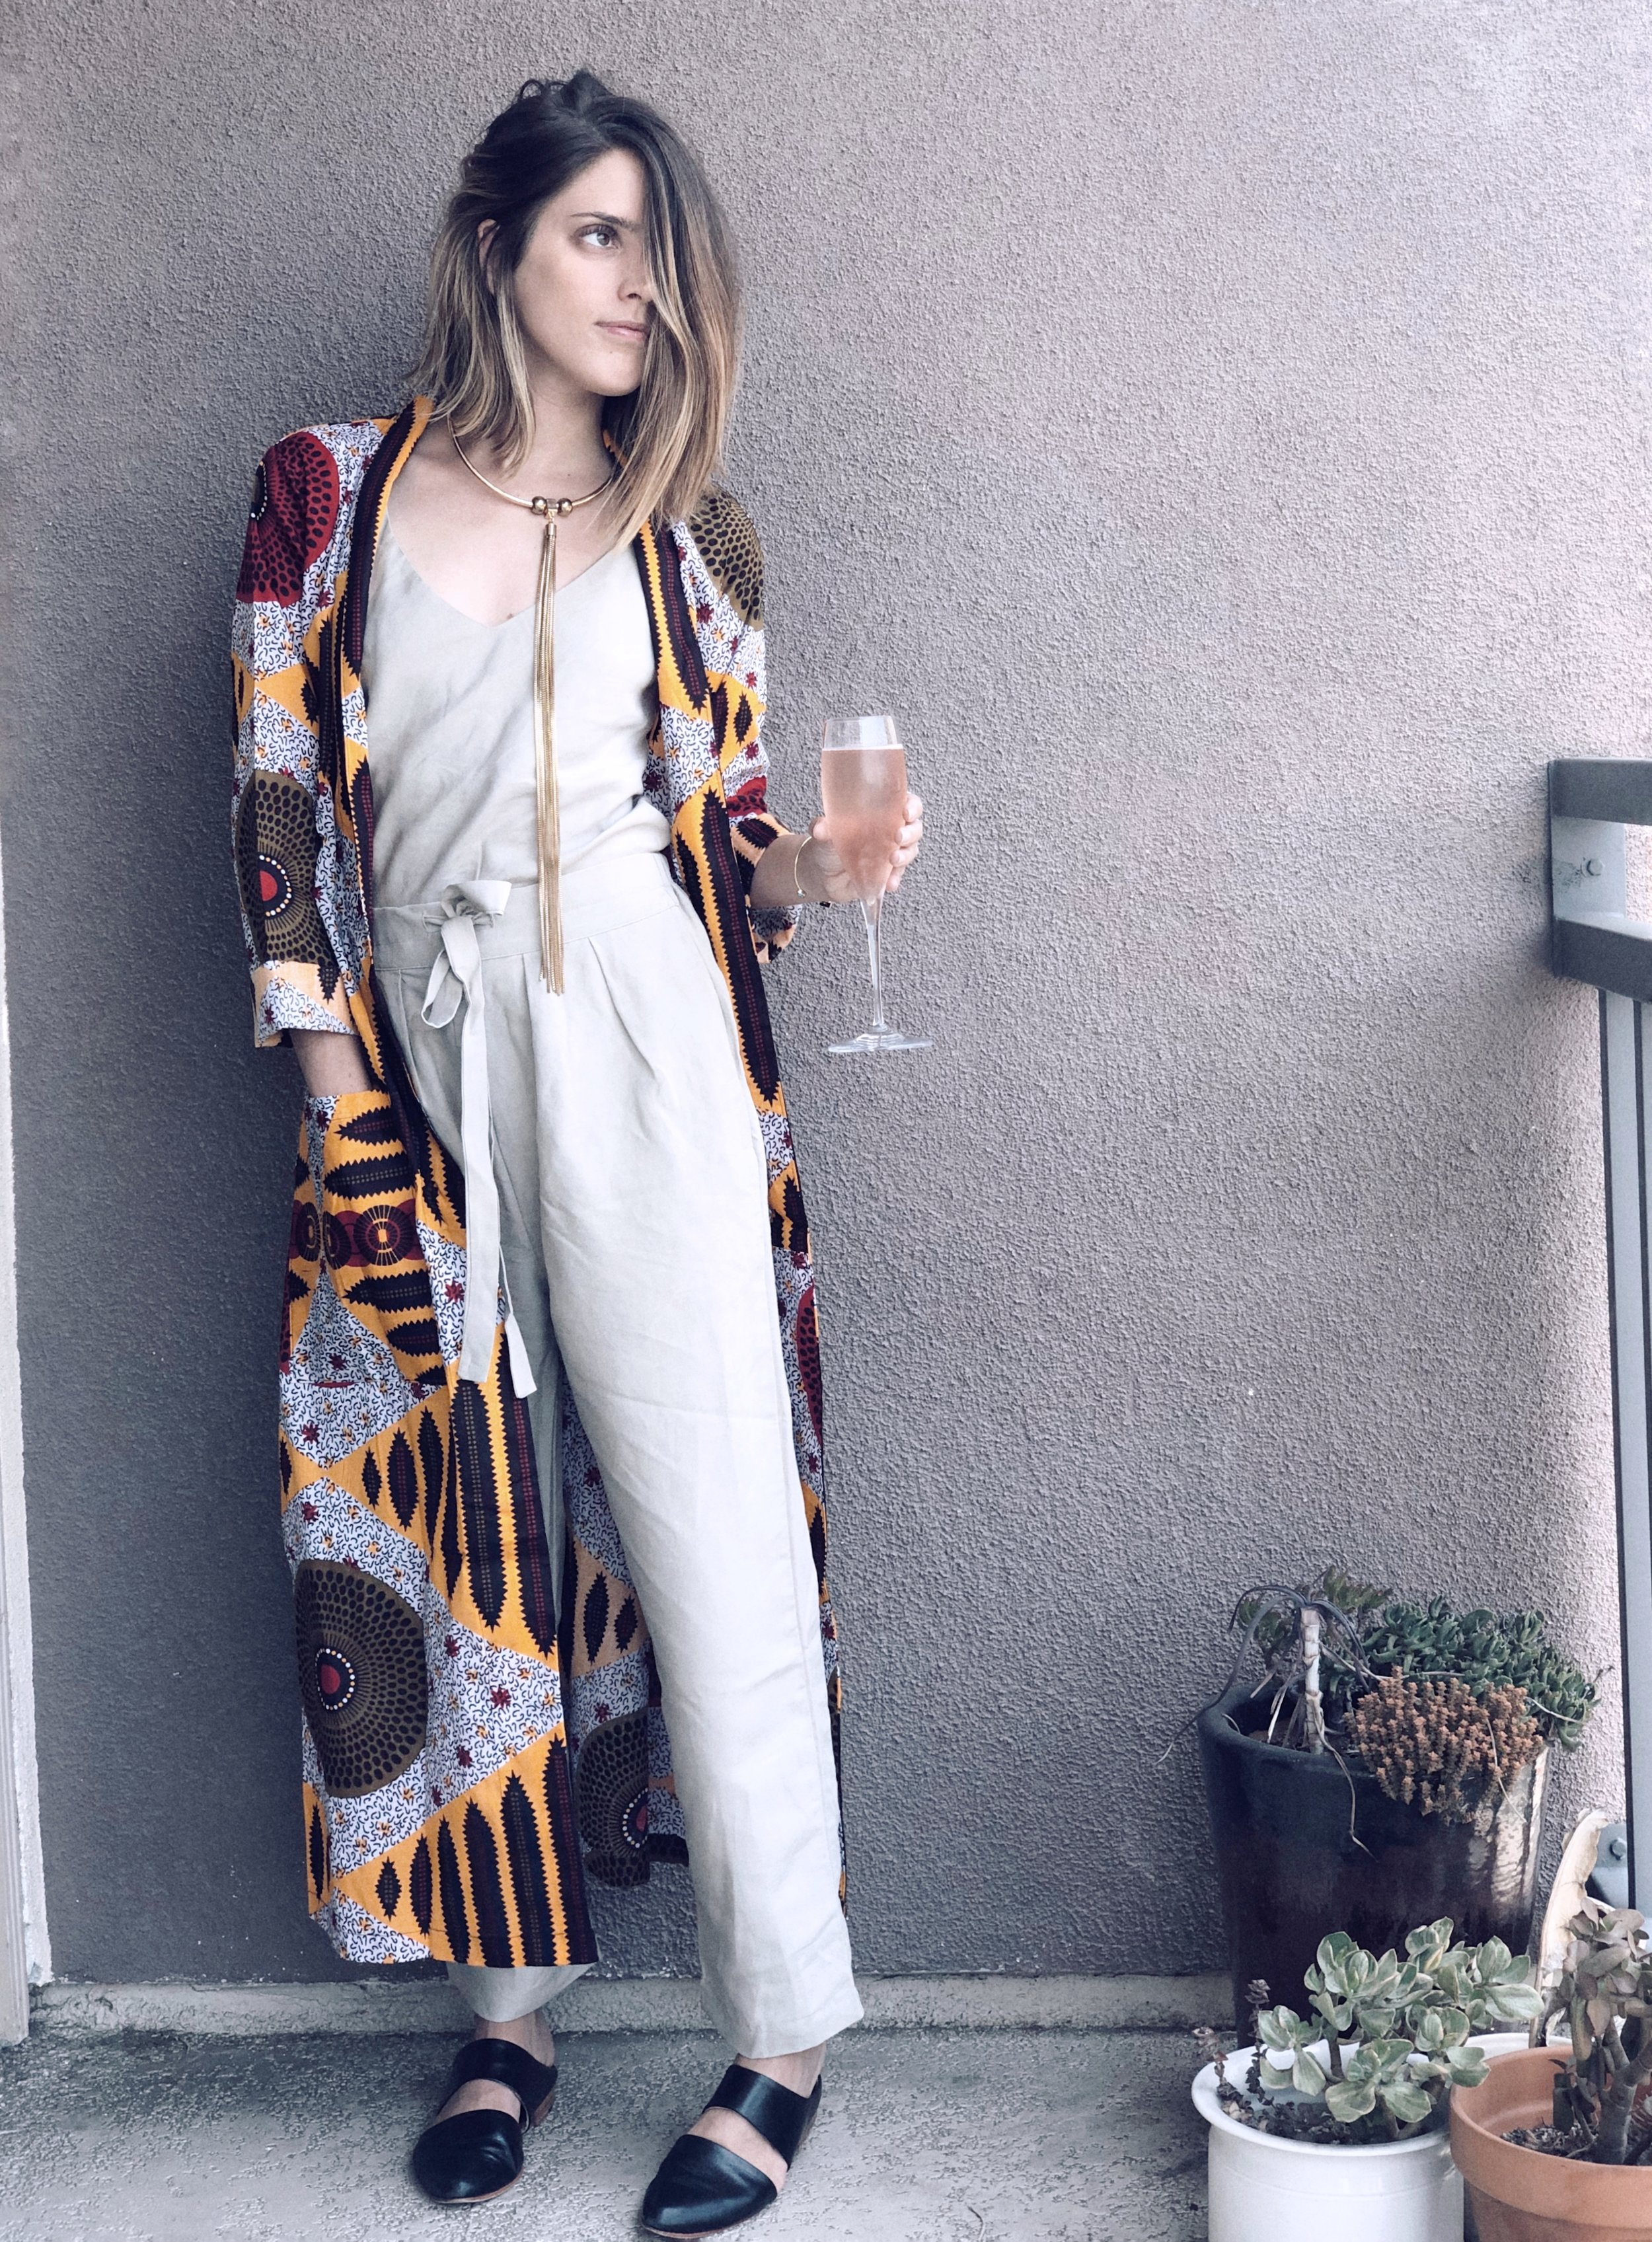 Top & Pants- Ozma of California; Mules- ZouXou Shoes; Robe- The Robe Lives; Necklace- Oldie but Goodie